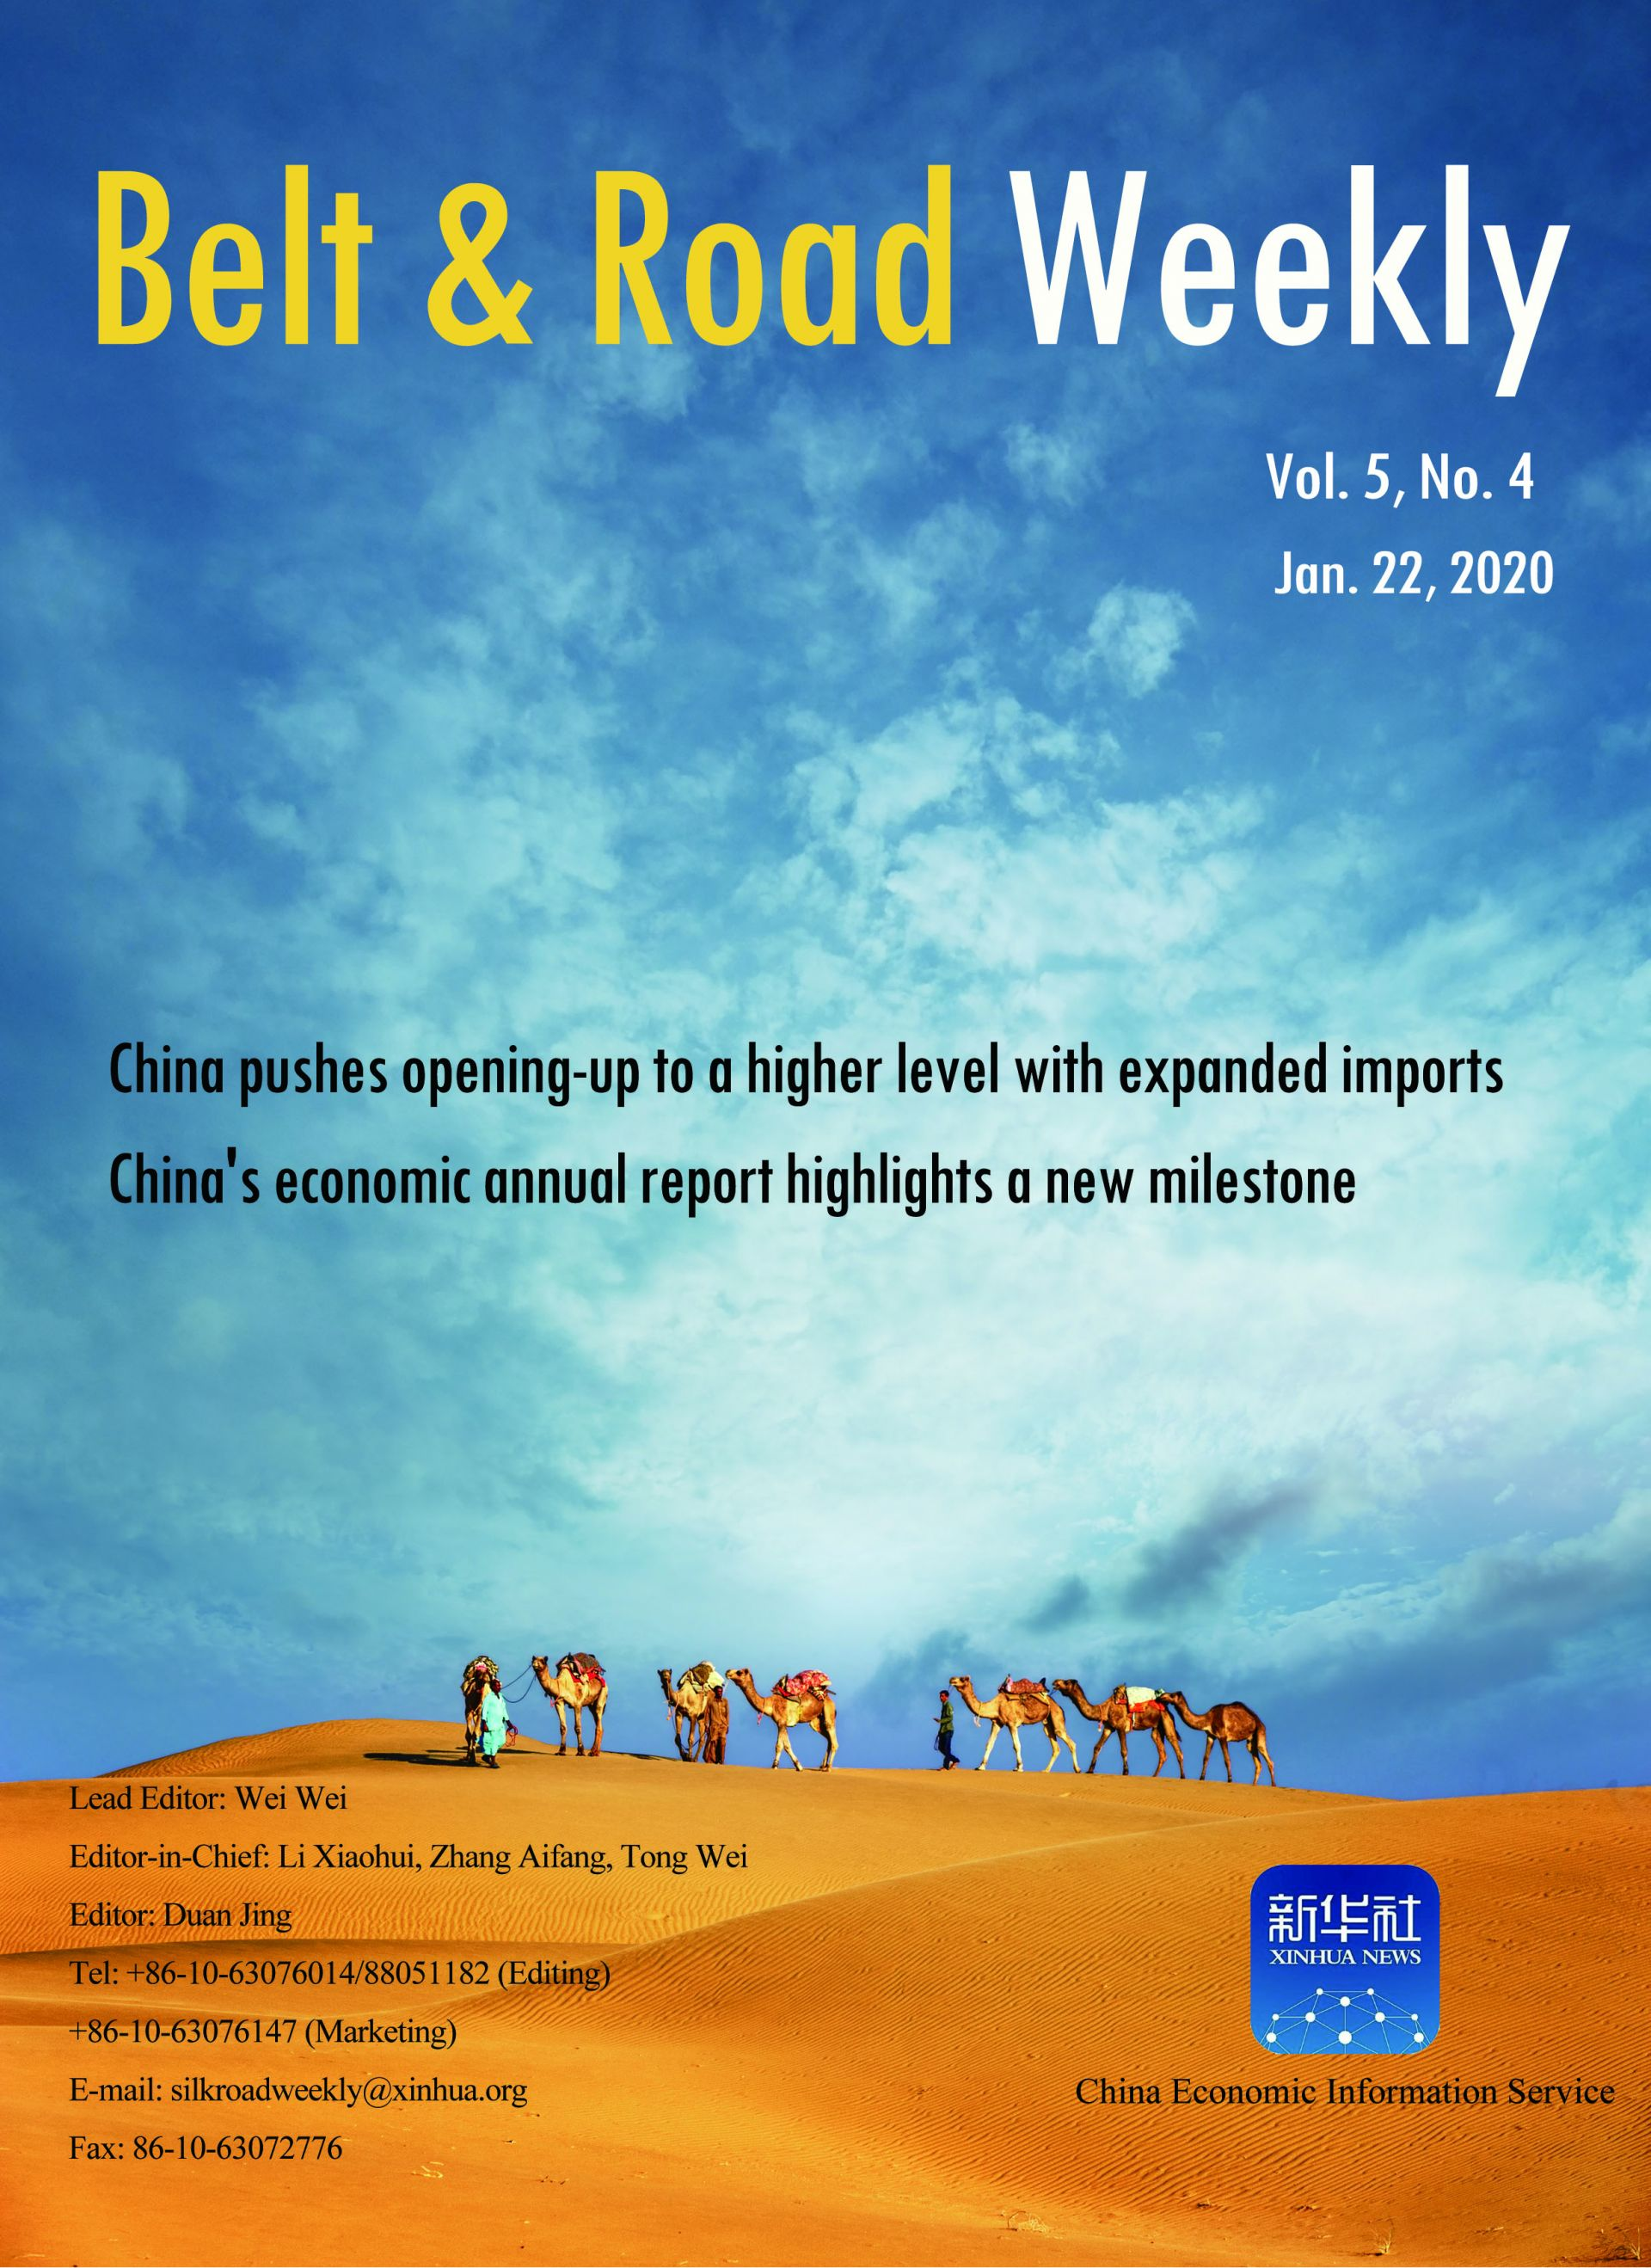 Belt & Road Weekly Vol. 5 No. 4